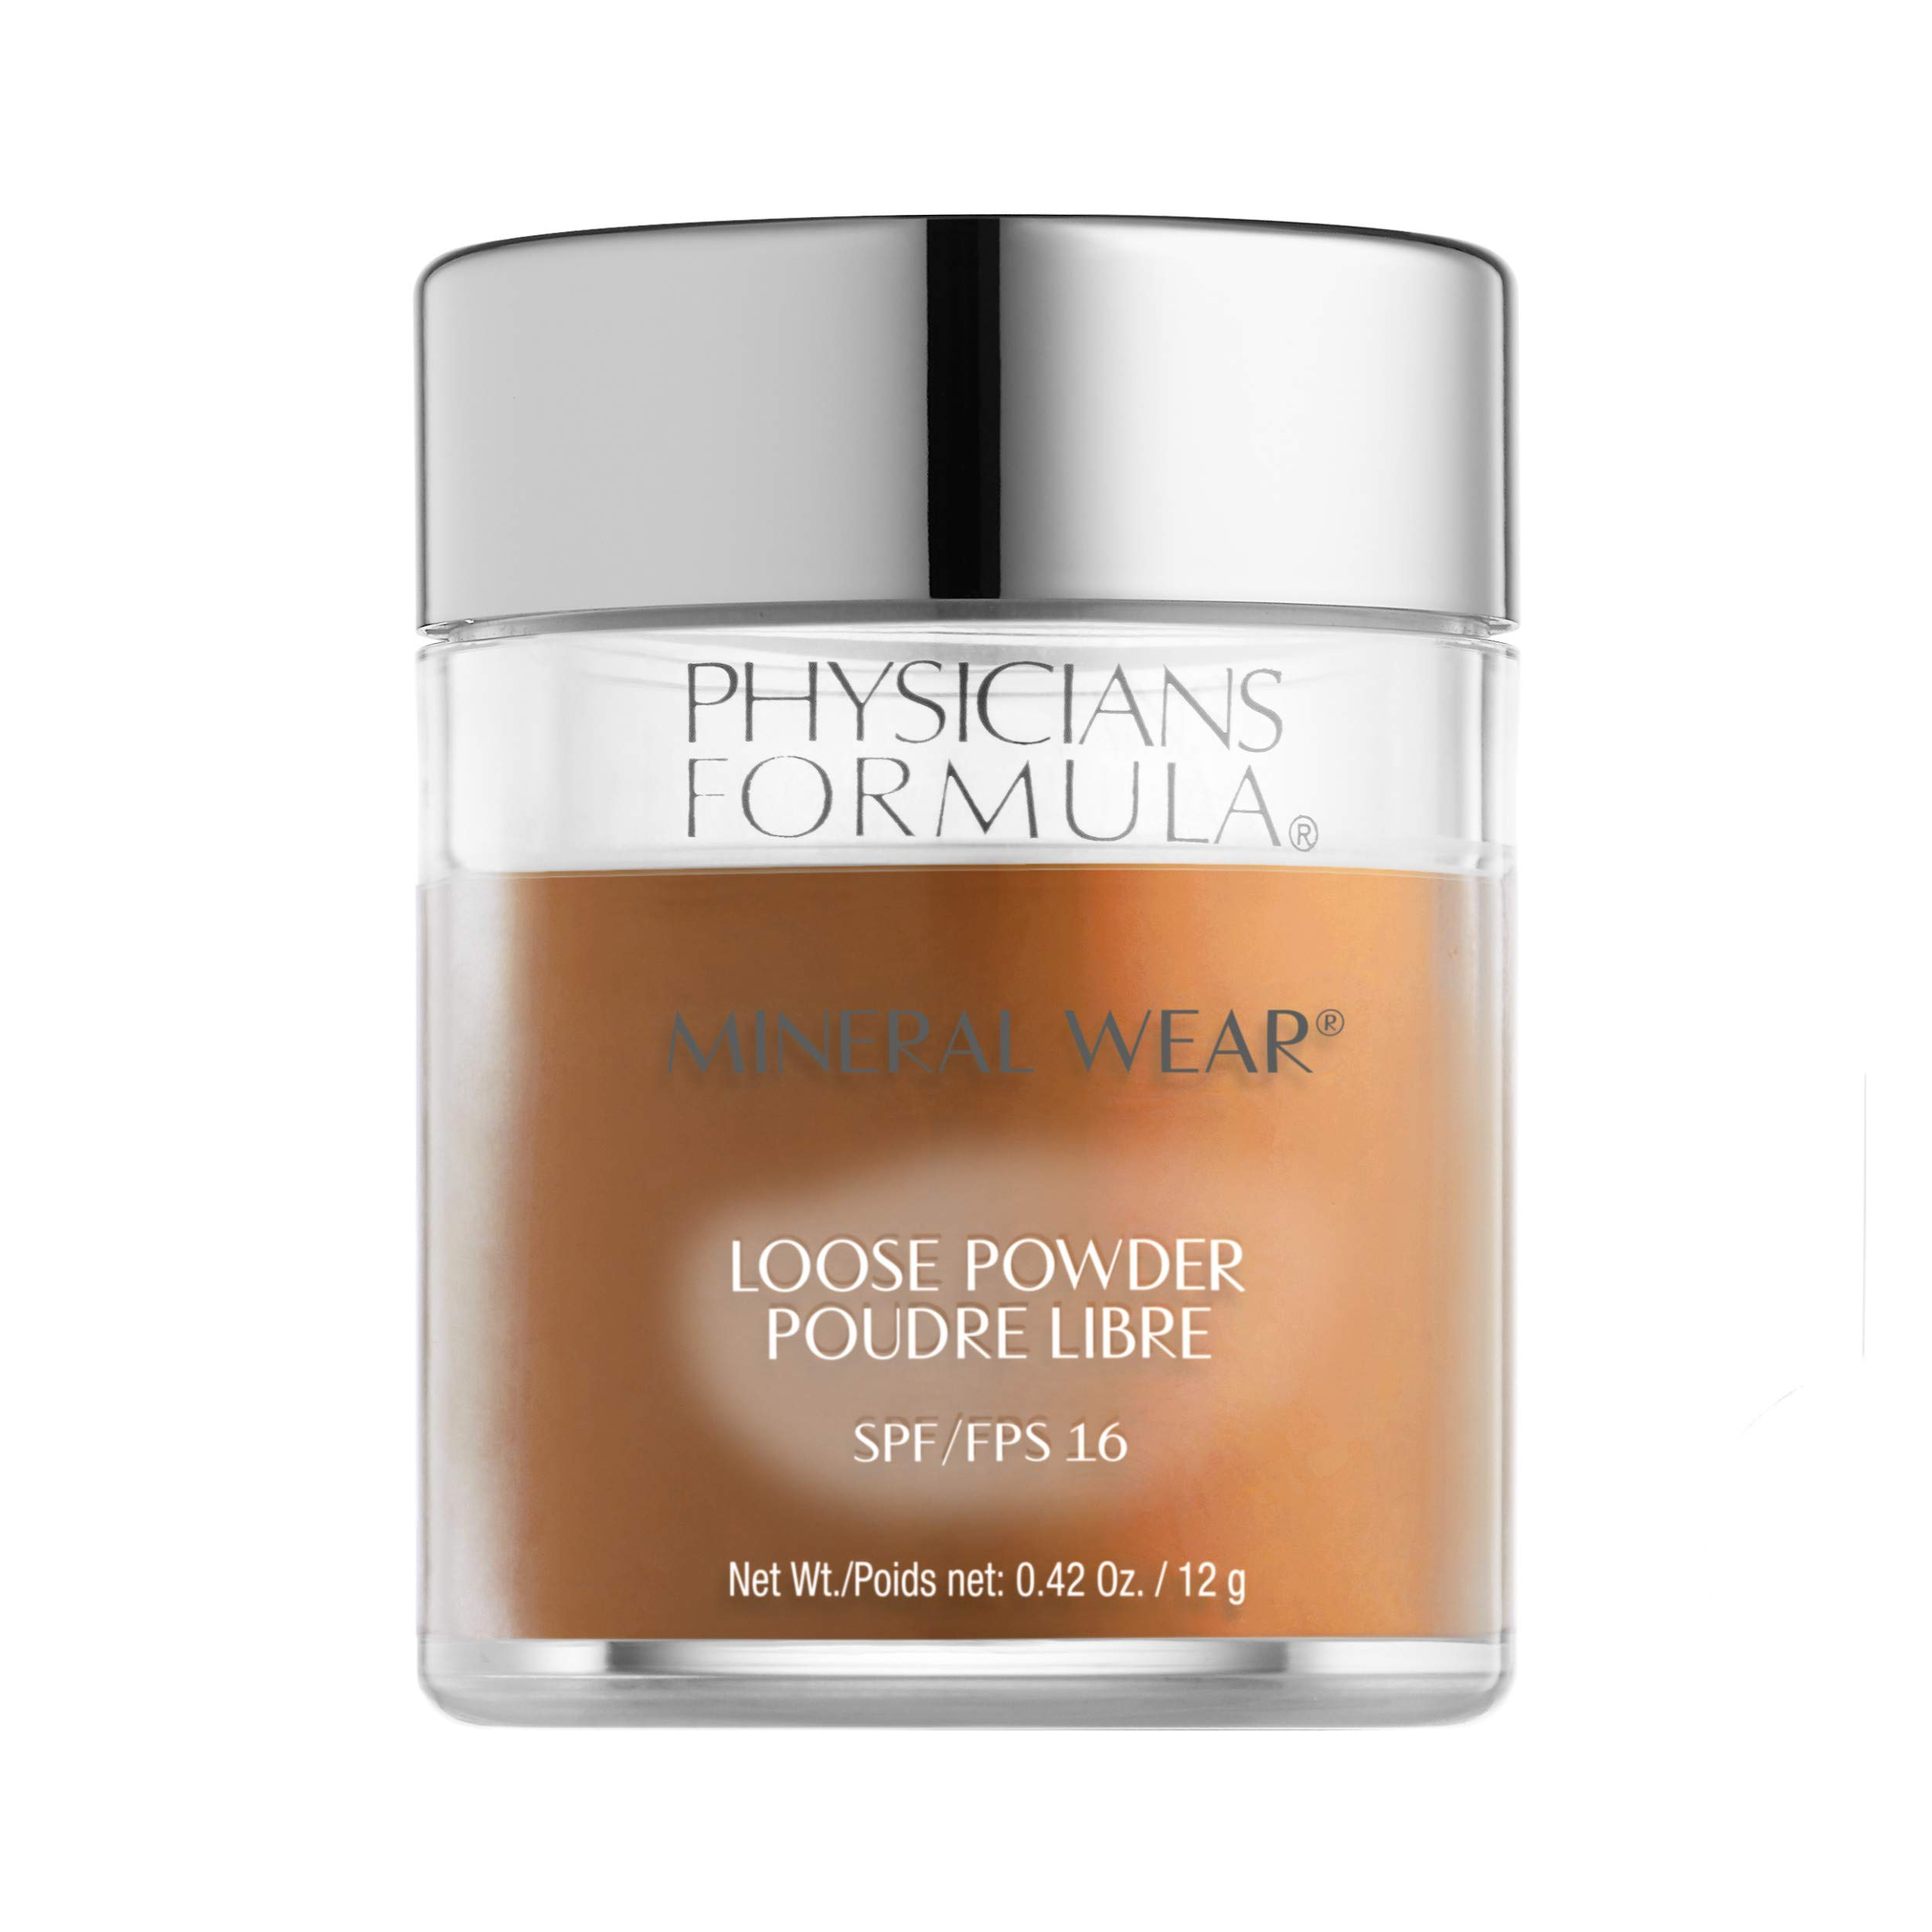 Physicians Formula Spf 16 Mineral Wear Loose Powder, Deep Cocoa, 0.42 Ounce